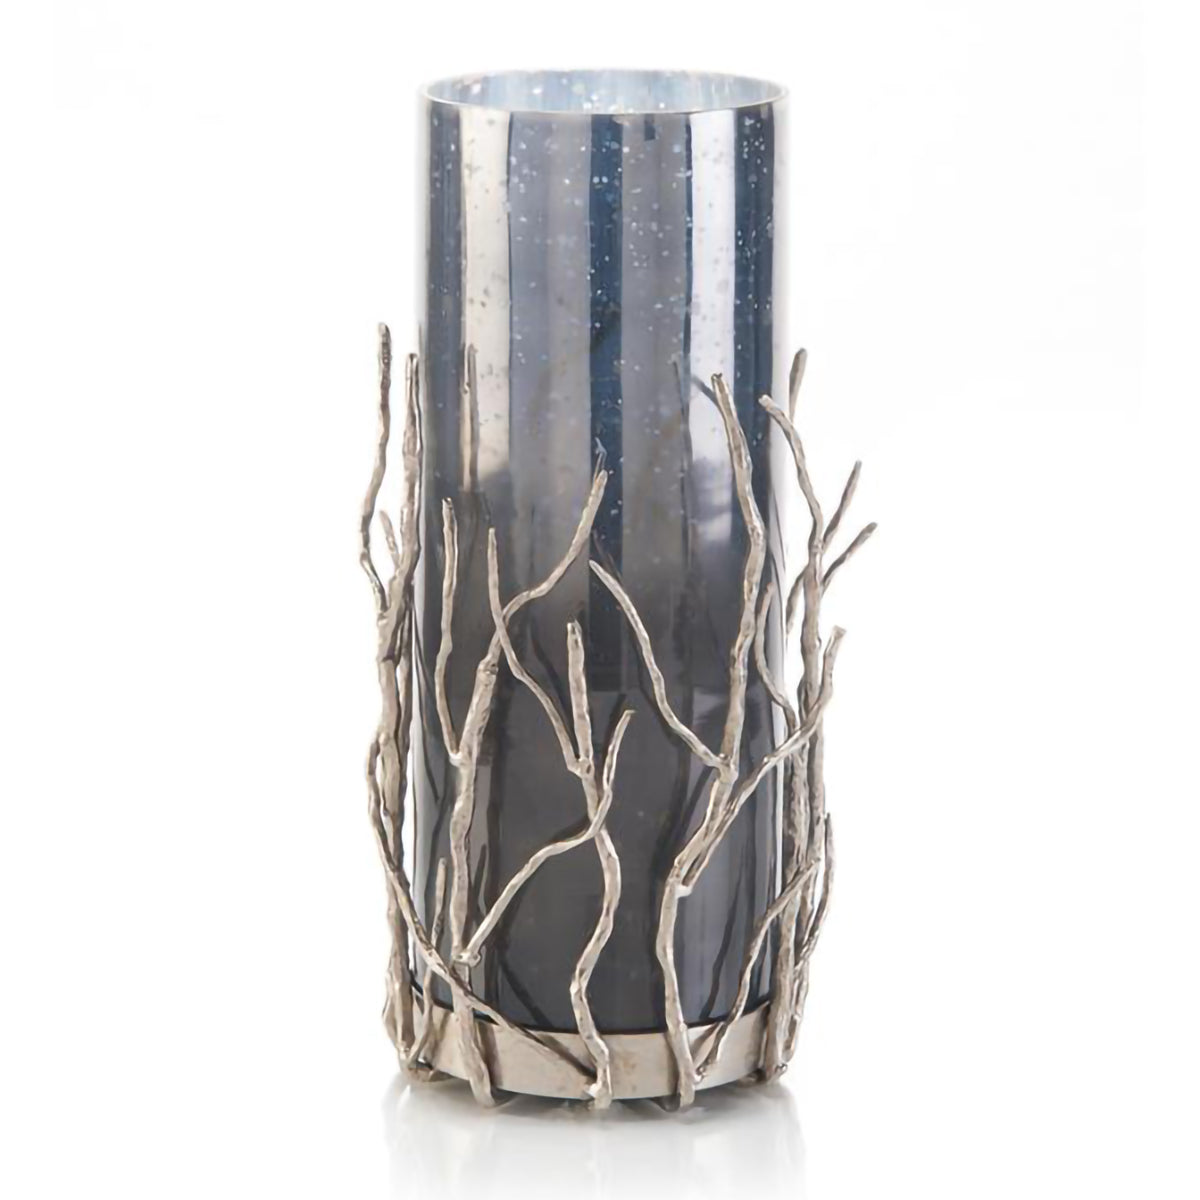 Nickel Sapling Candle Holder